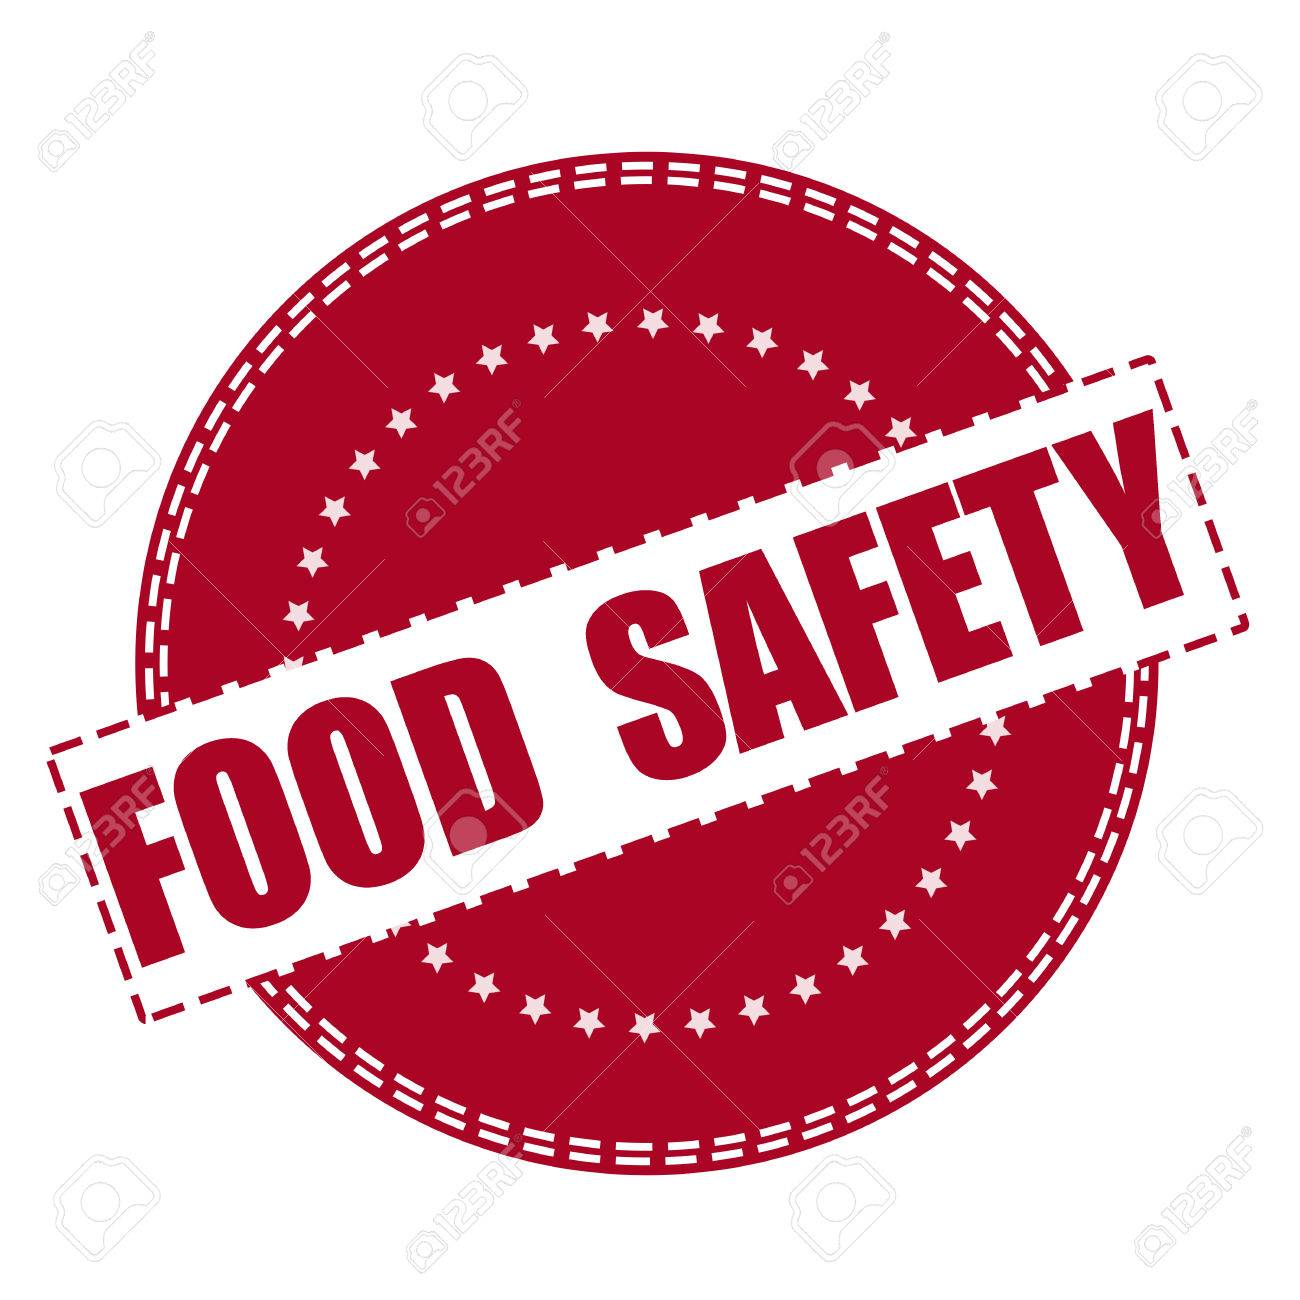 food safety grunge stamp with on vector illustration.